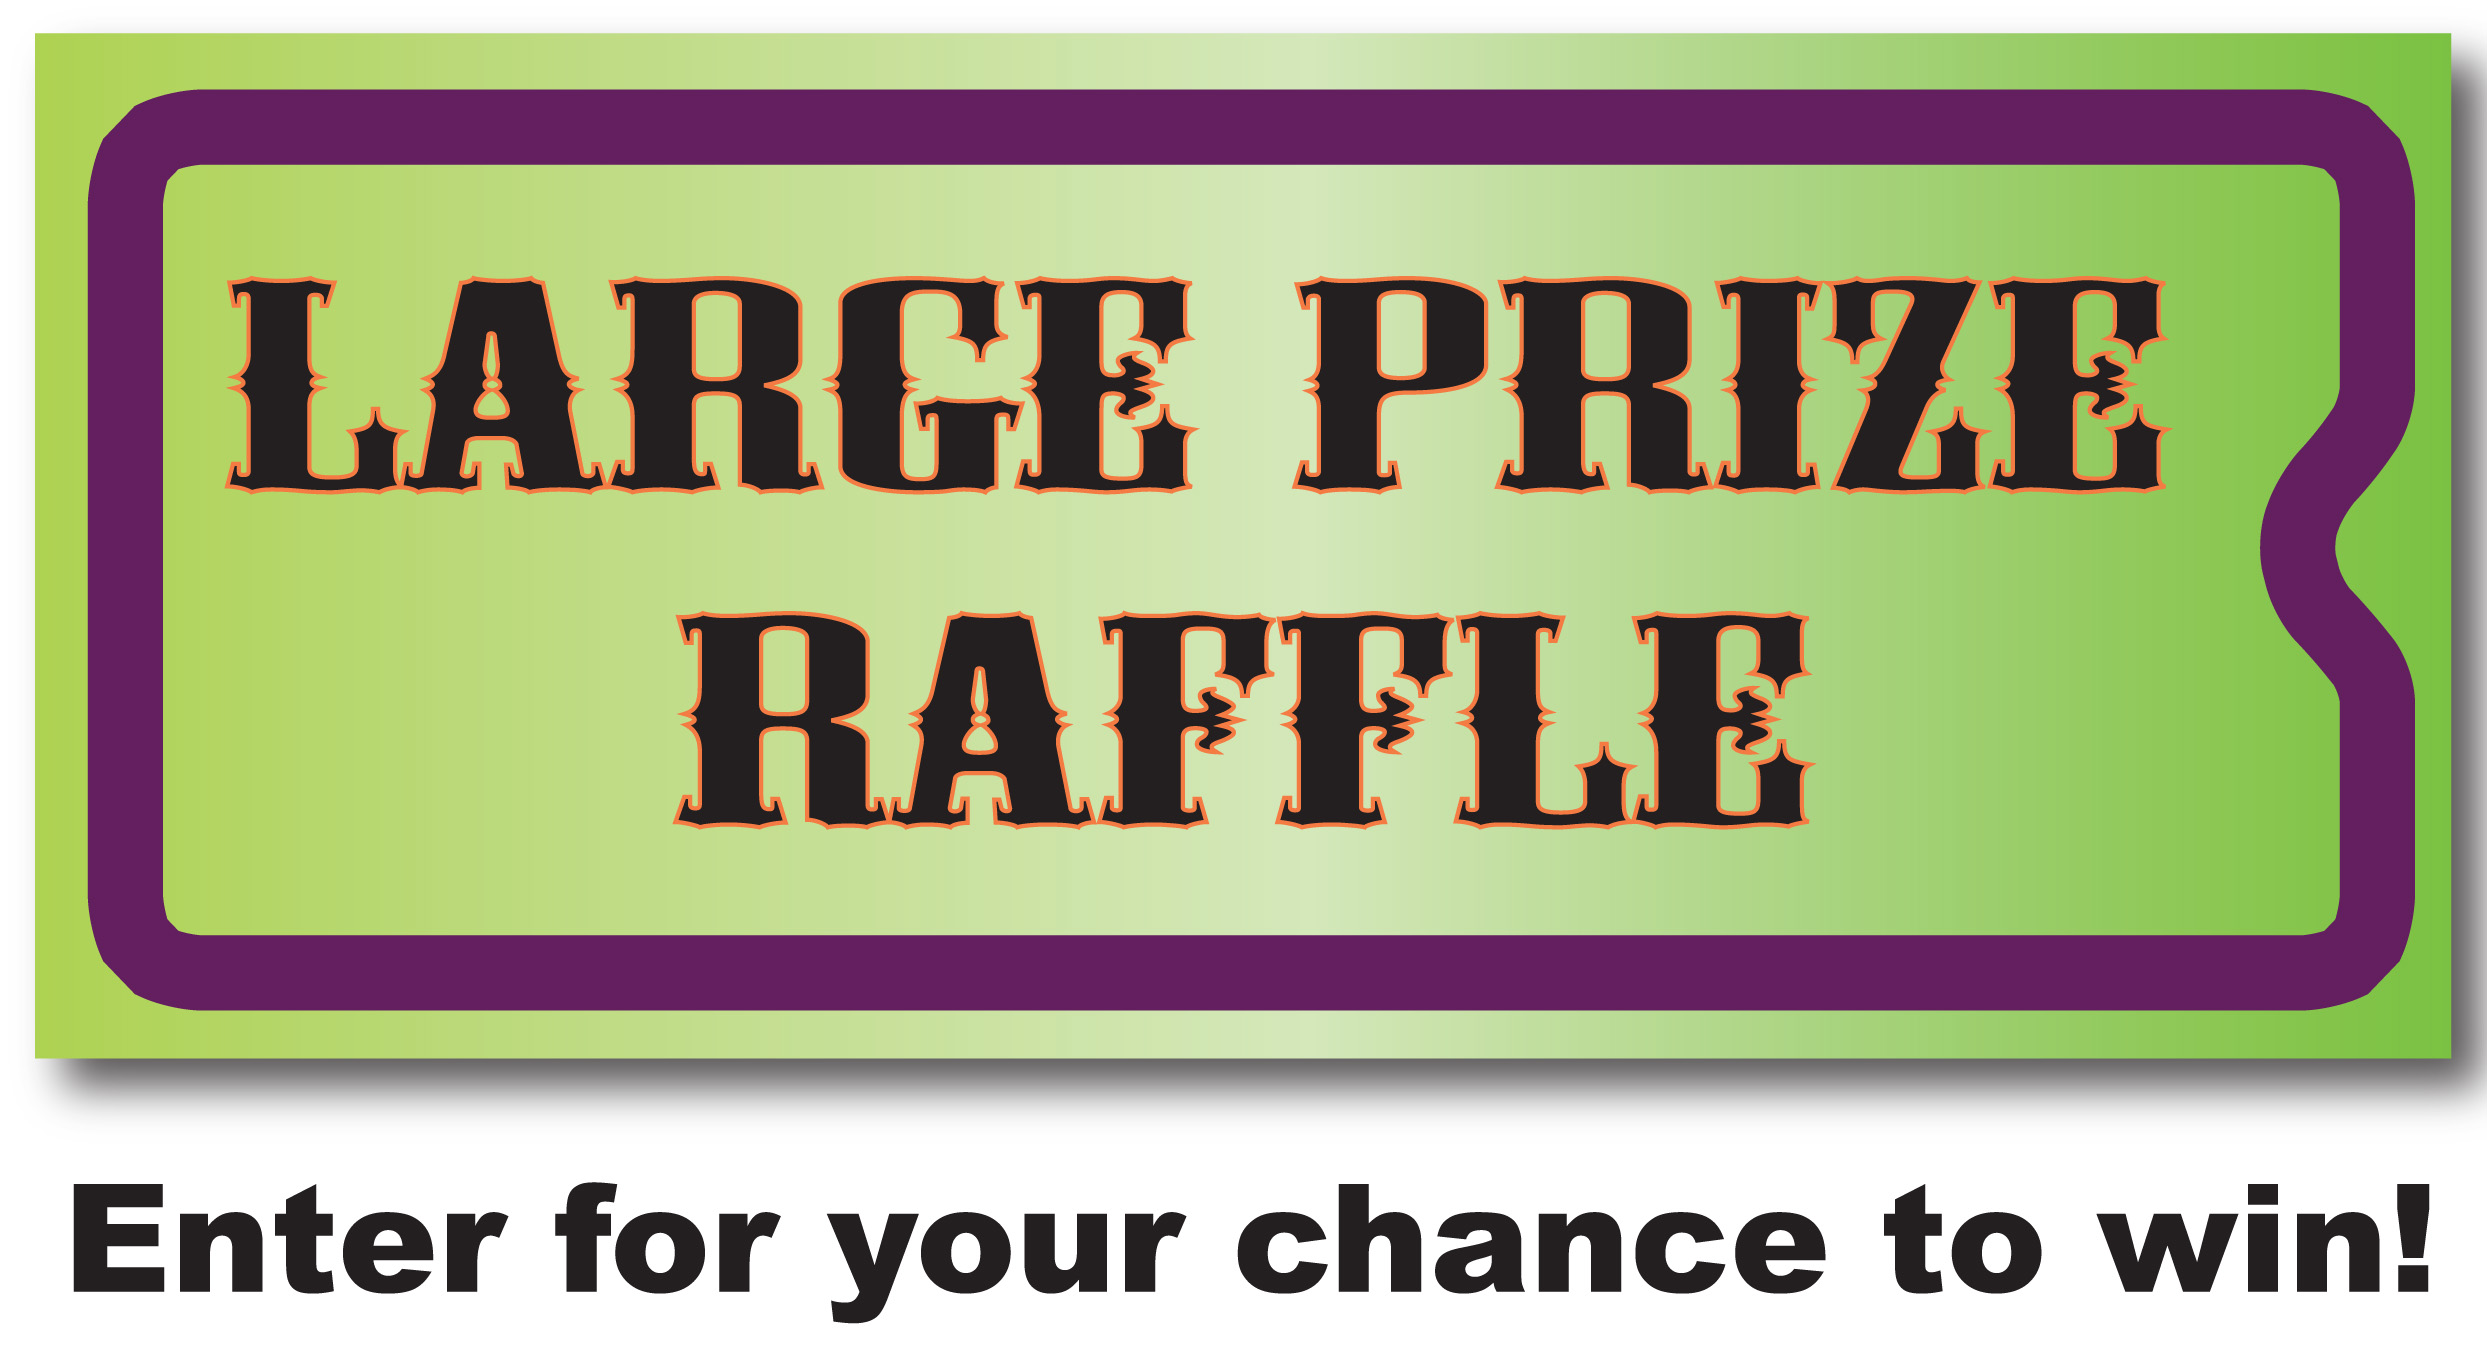 large prize raffle download